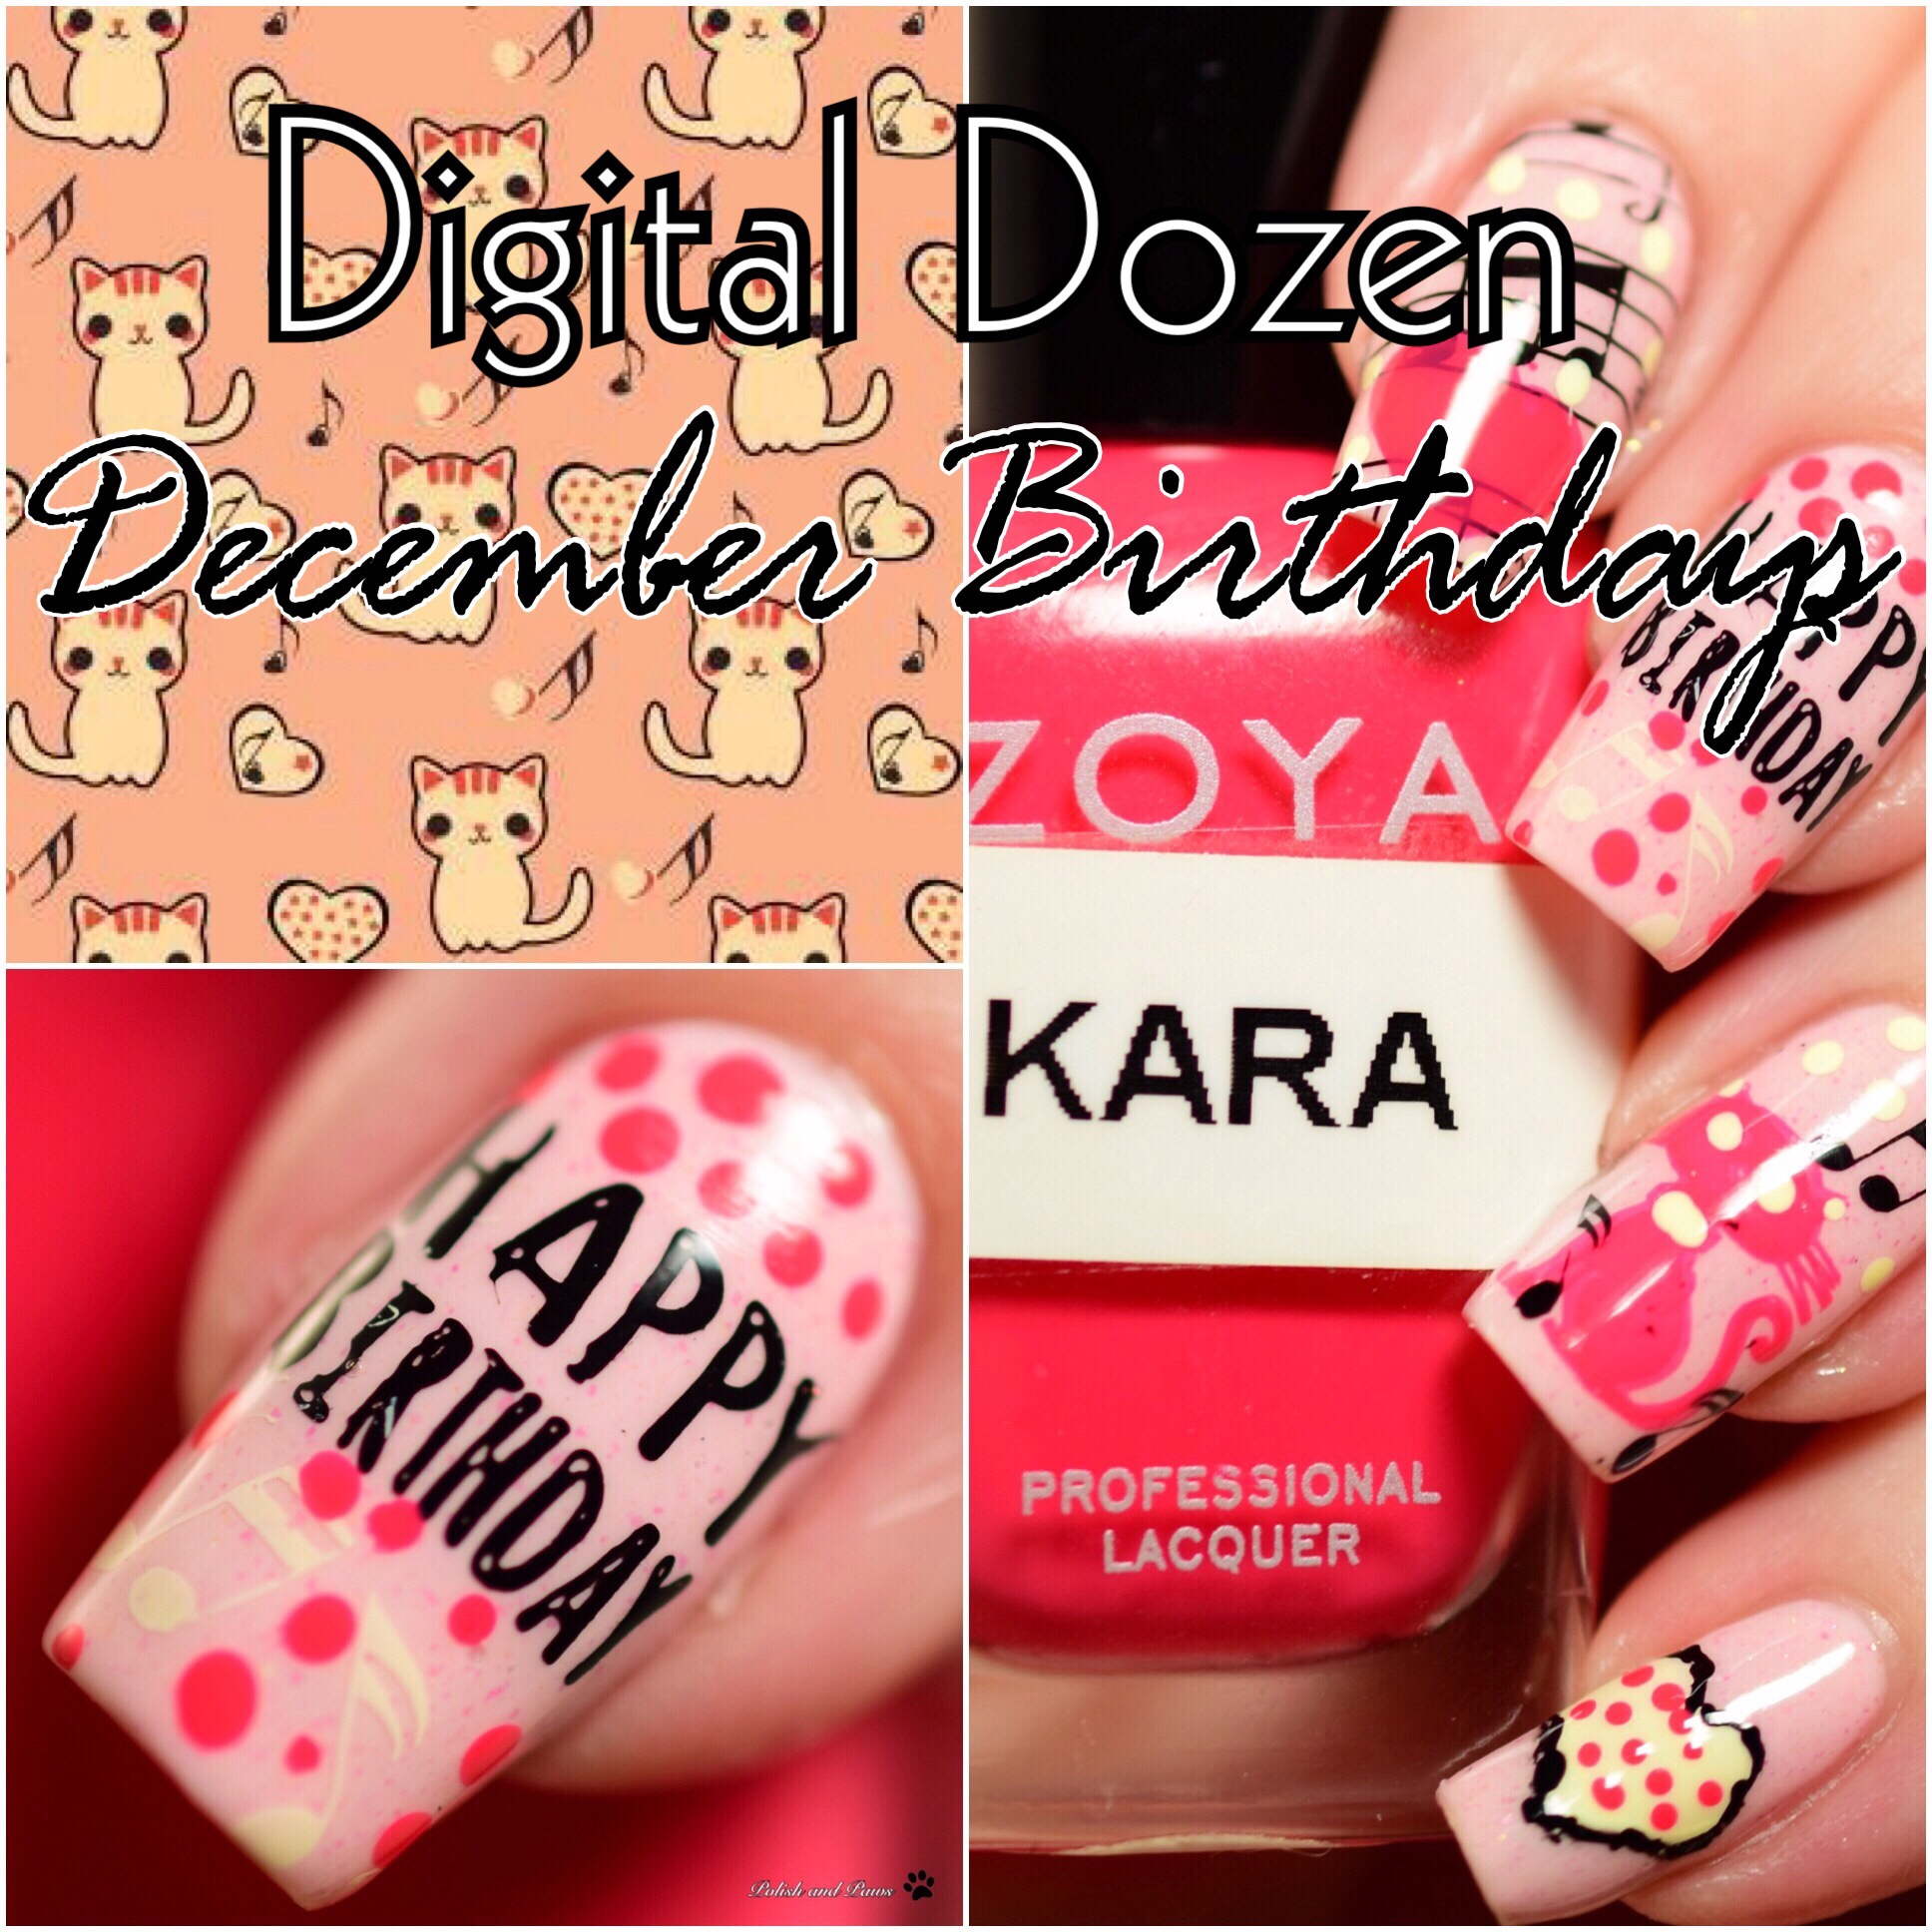 Digital Dozen December Birthdays